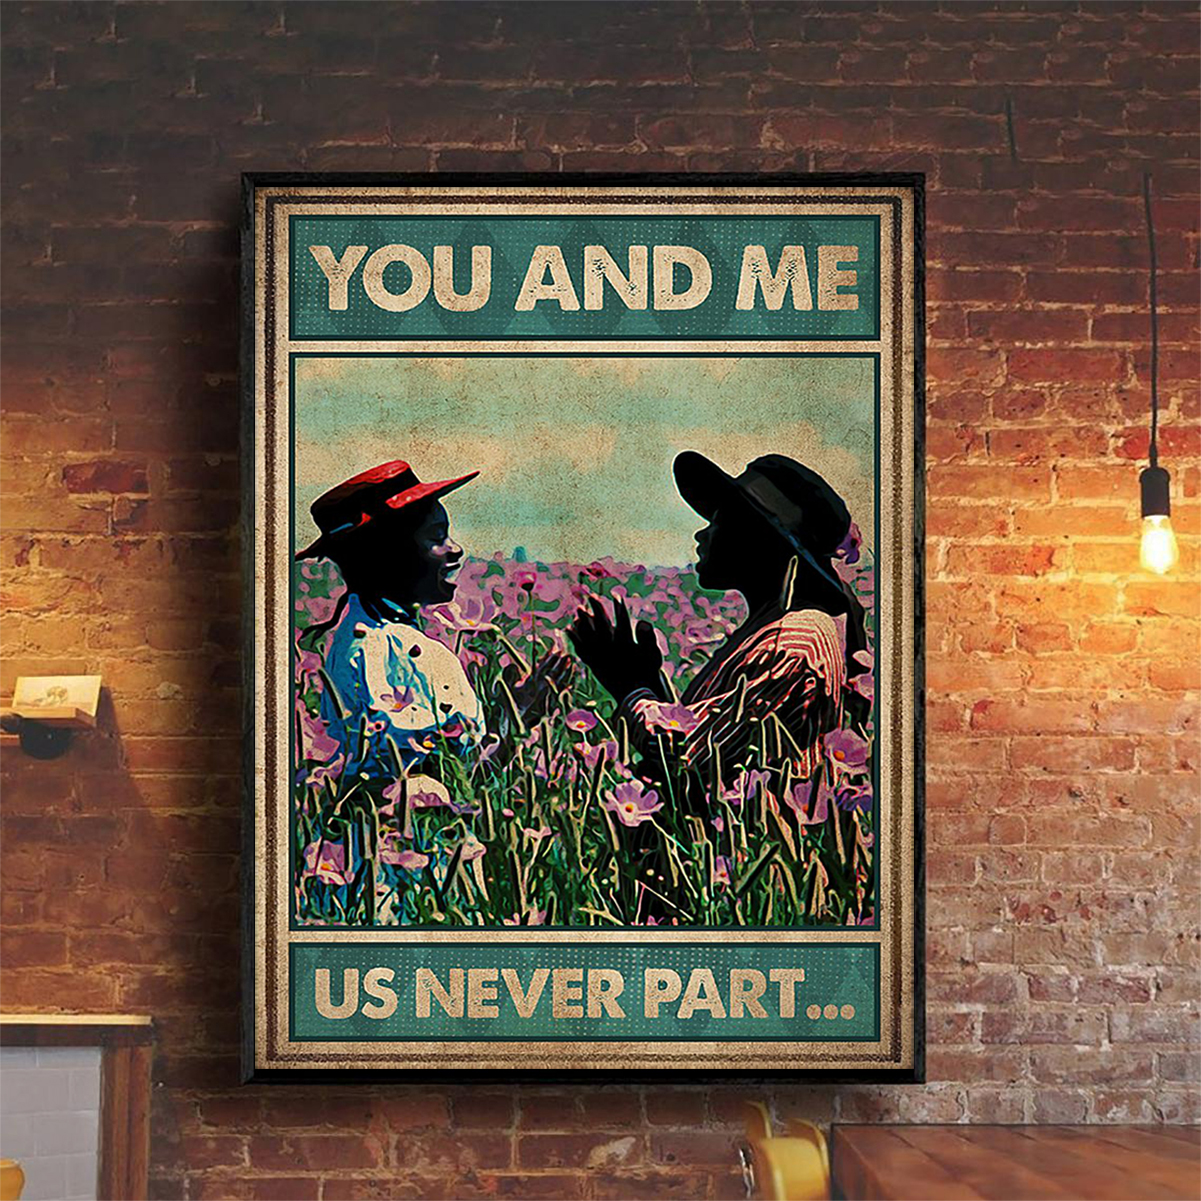 You and me us never part poster A2